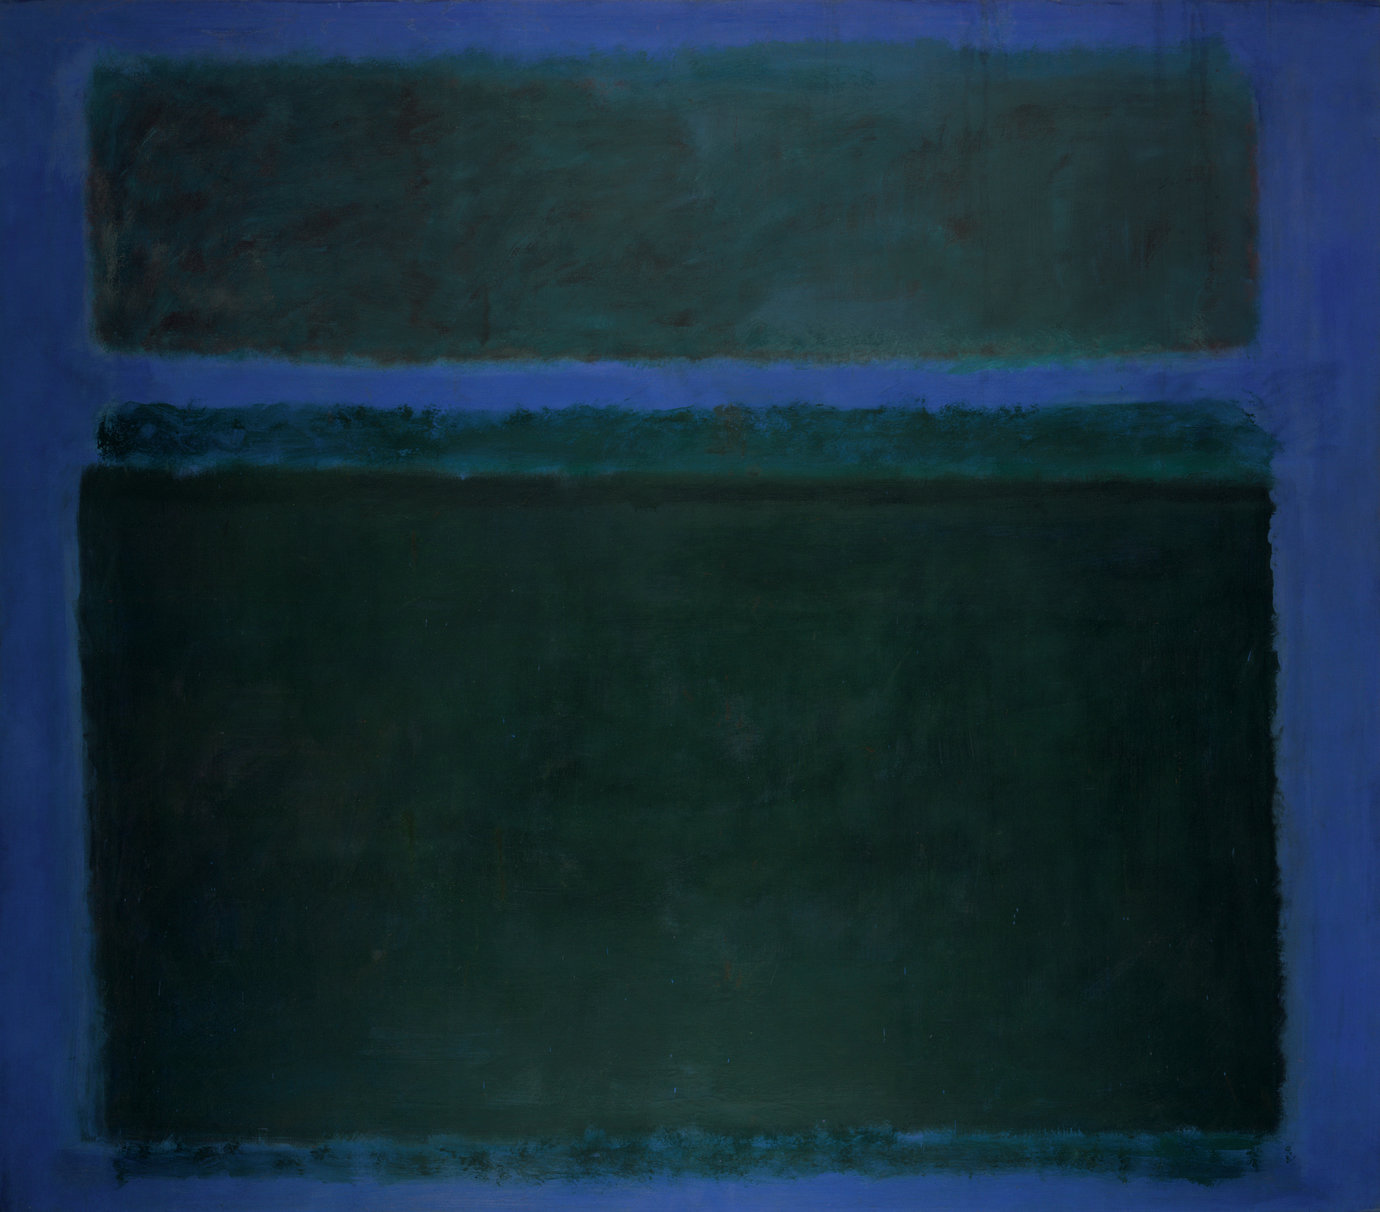 ", 1957. oil on canvas, 8' 7"" x 9' 8-1/2"" (261.6 cm x 295.9 cm)."